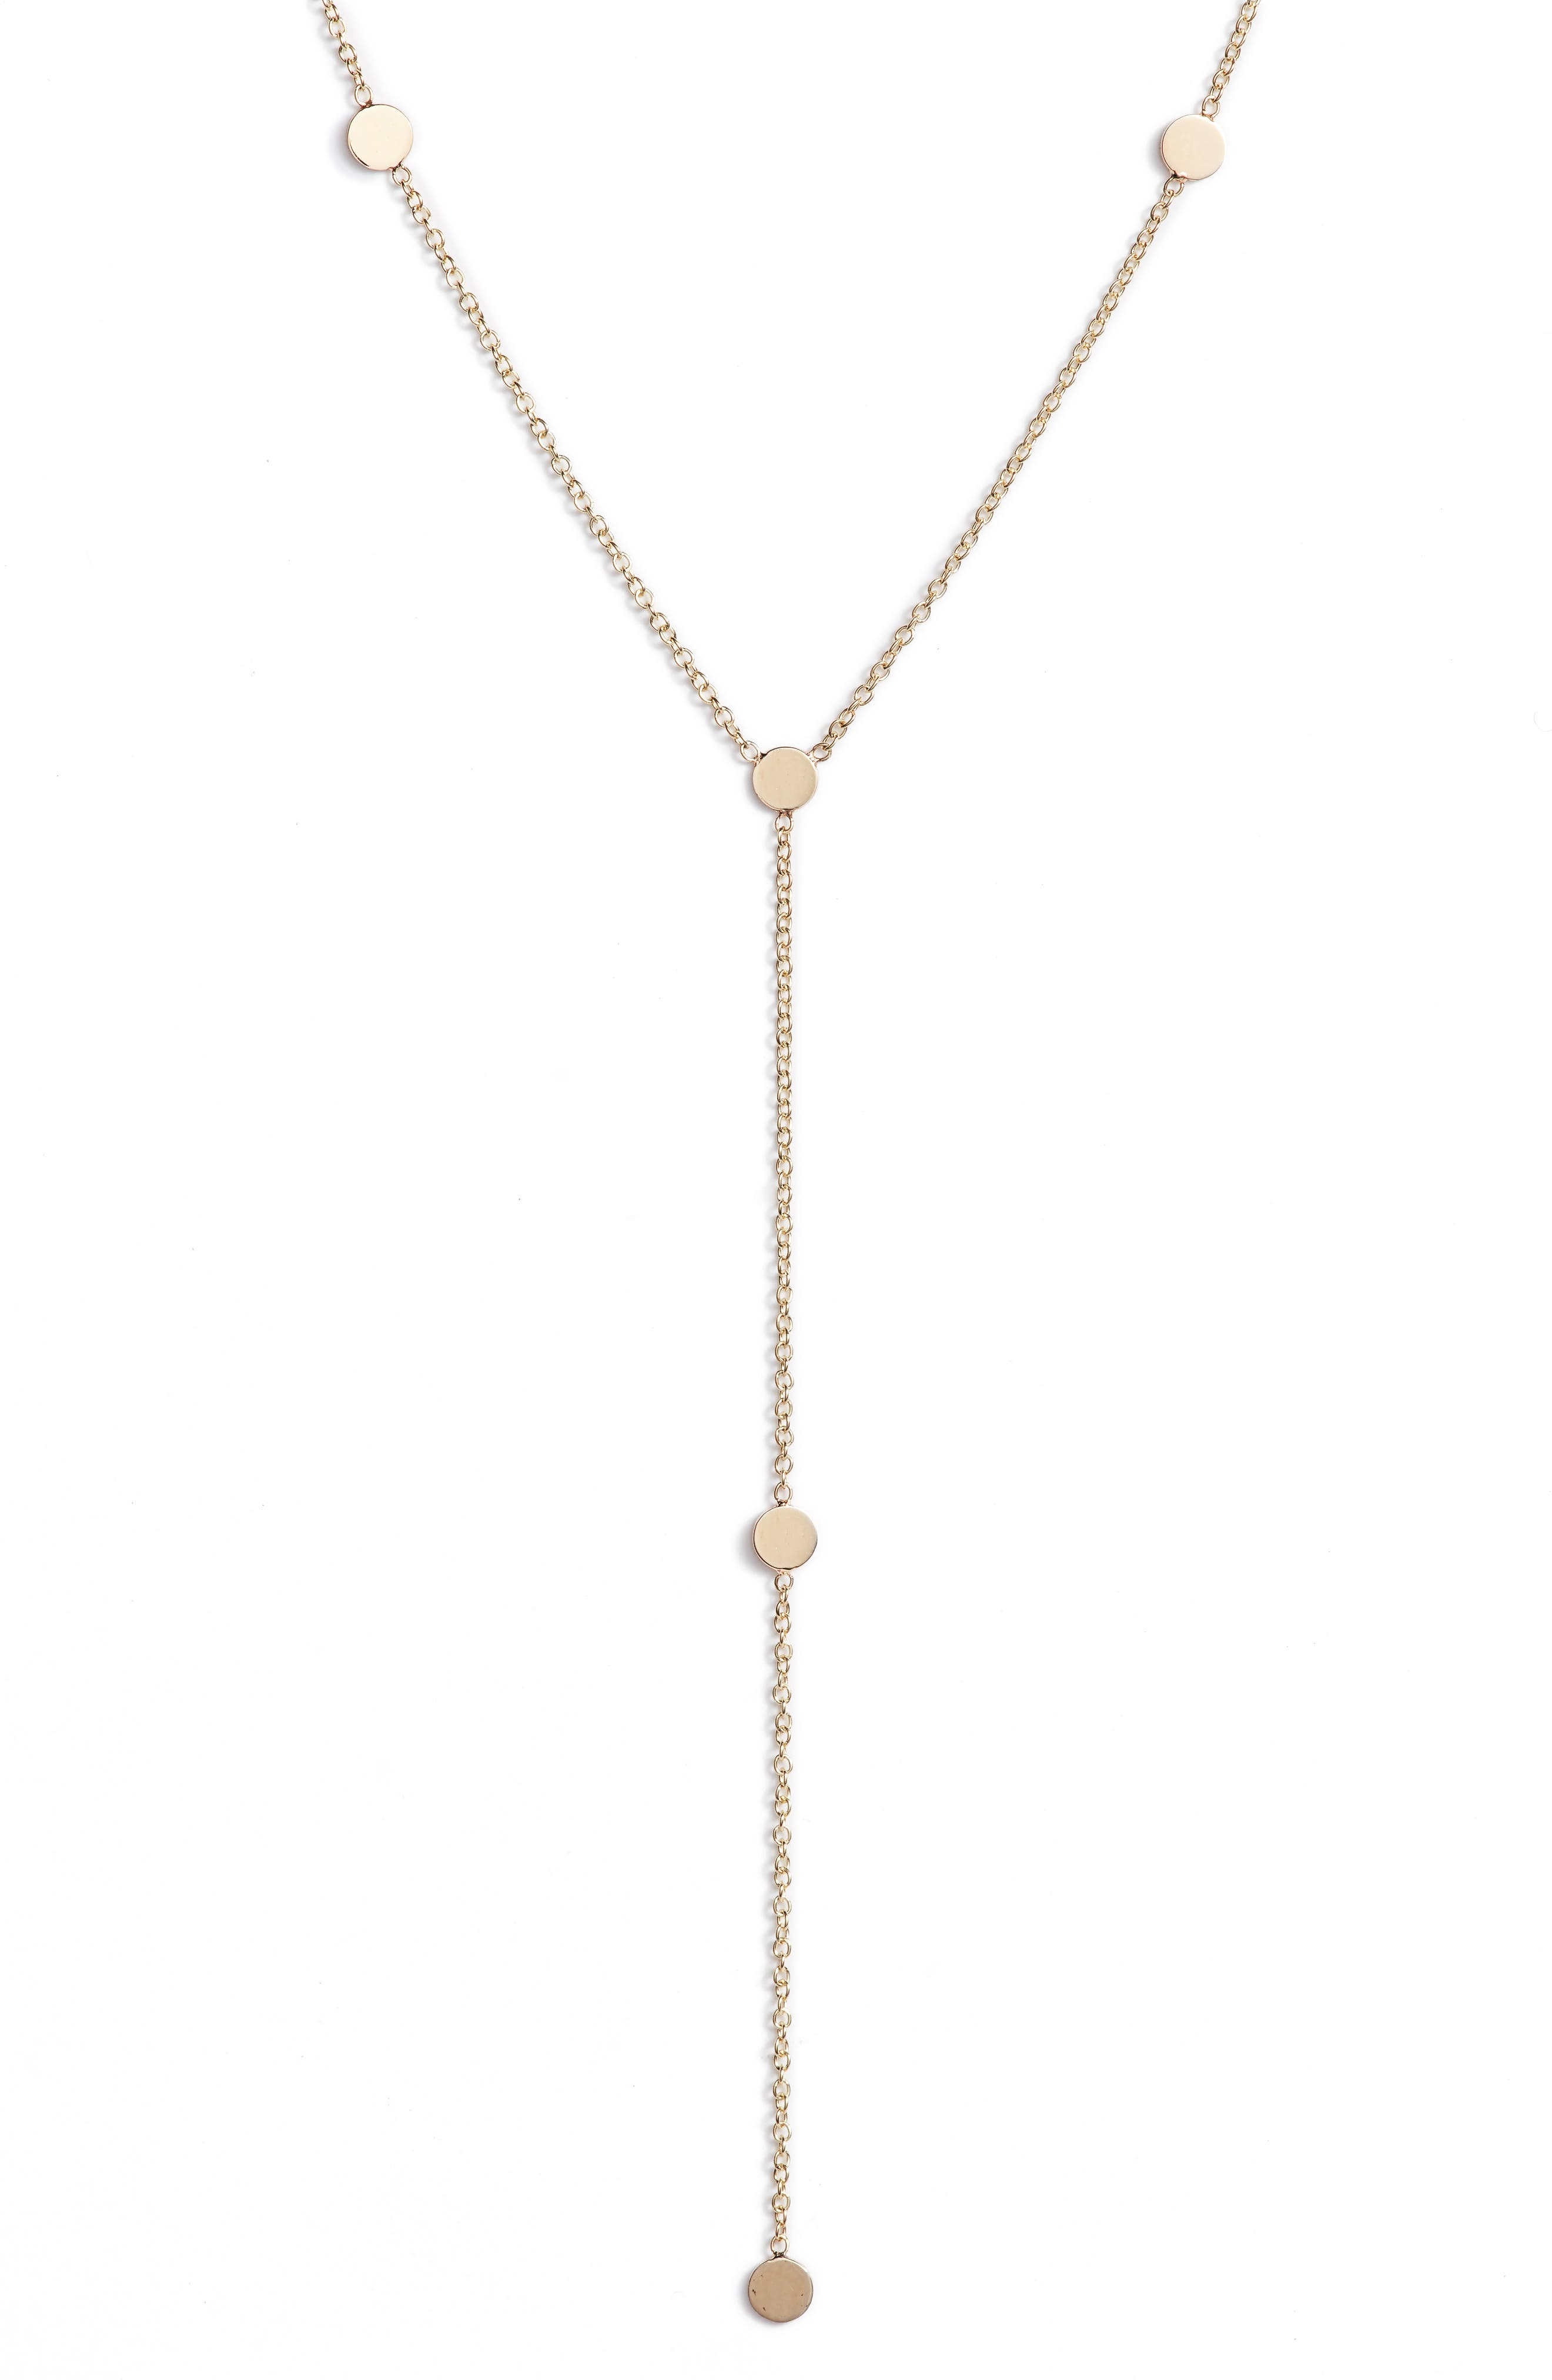 Zoe Chicco Itty Bitty Round Disk Lariat Necklace